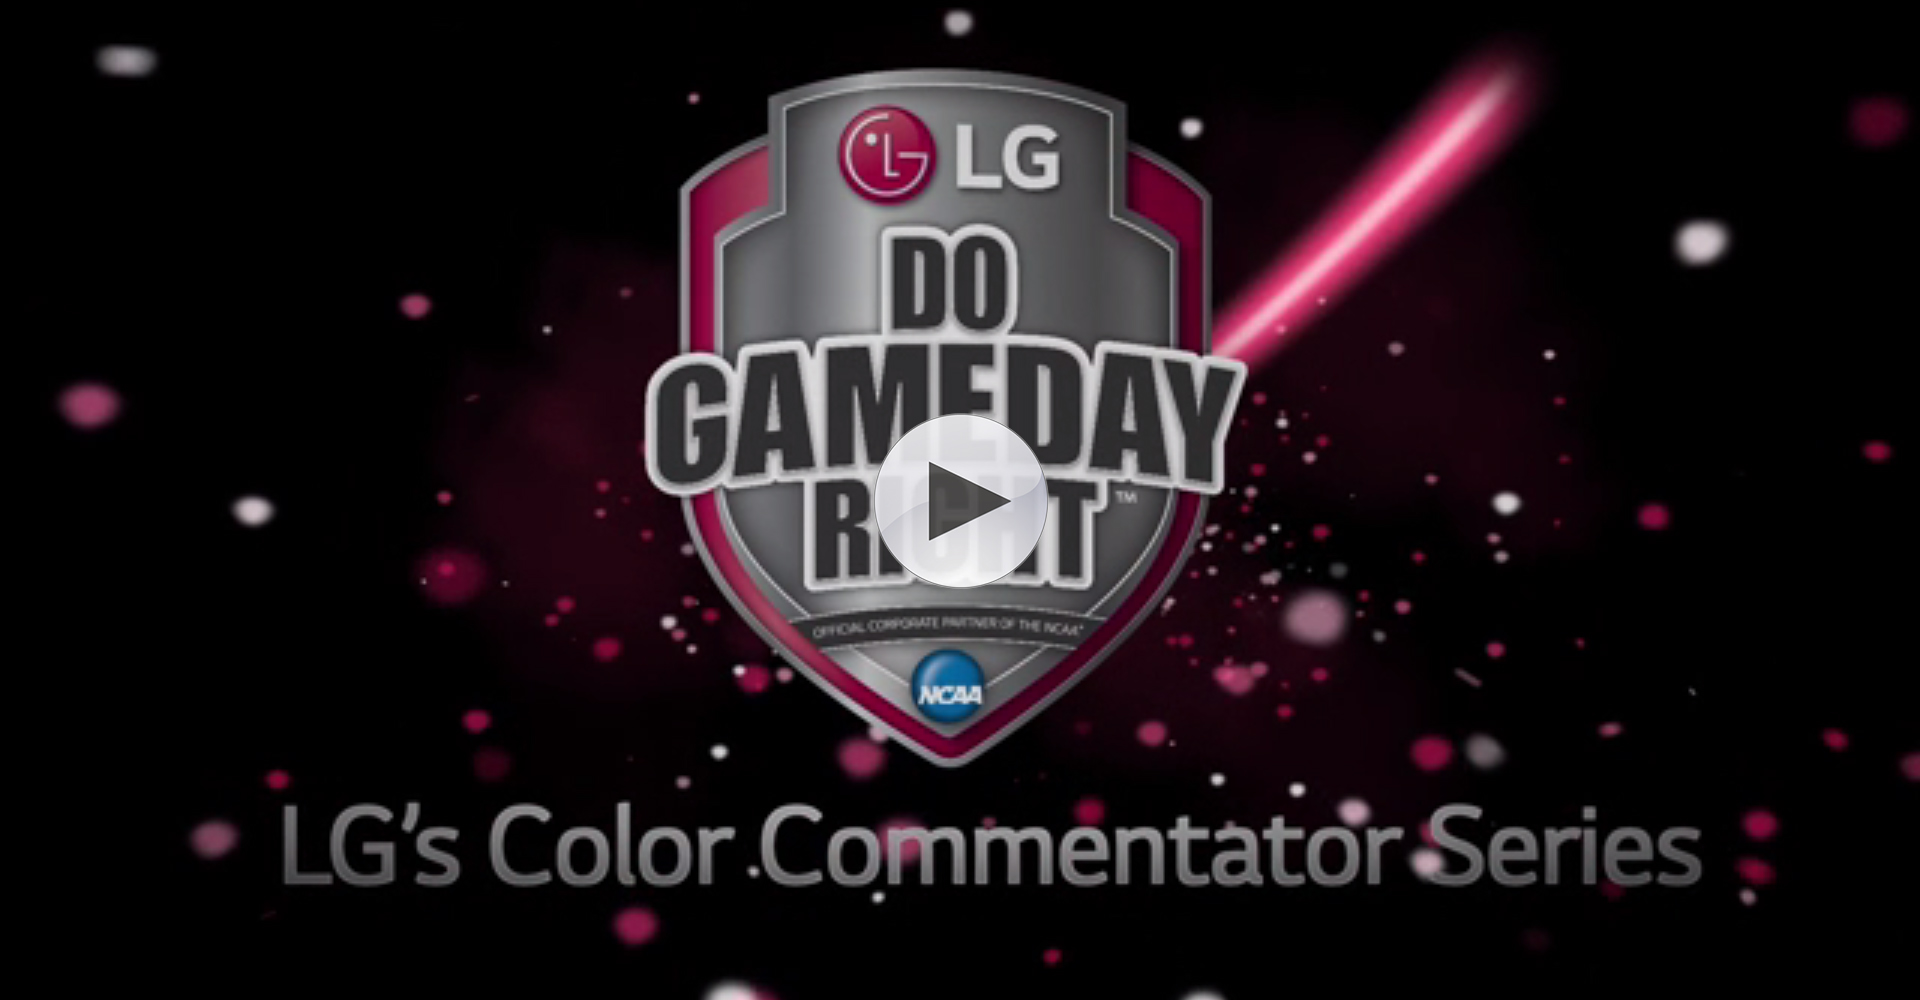 ESPN College Basketball Analyst and LG Color Commentator Jay Bilas shares his tips on how to do game day right.